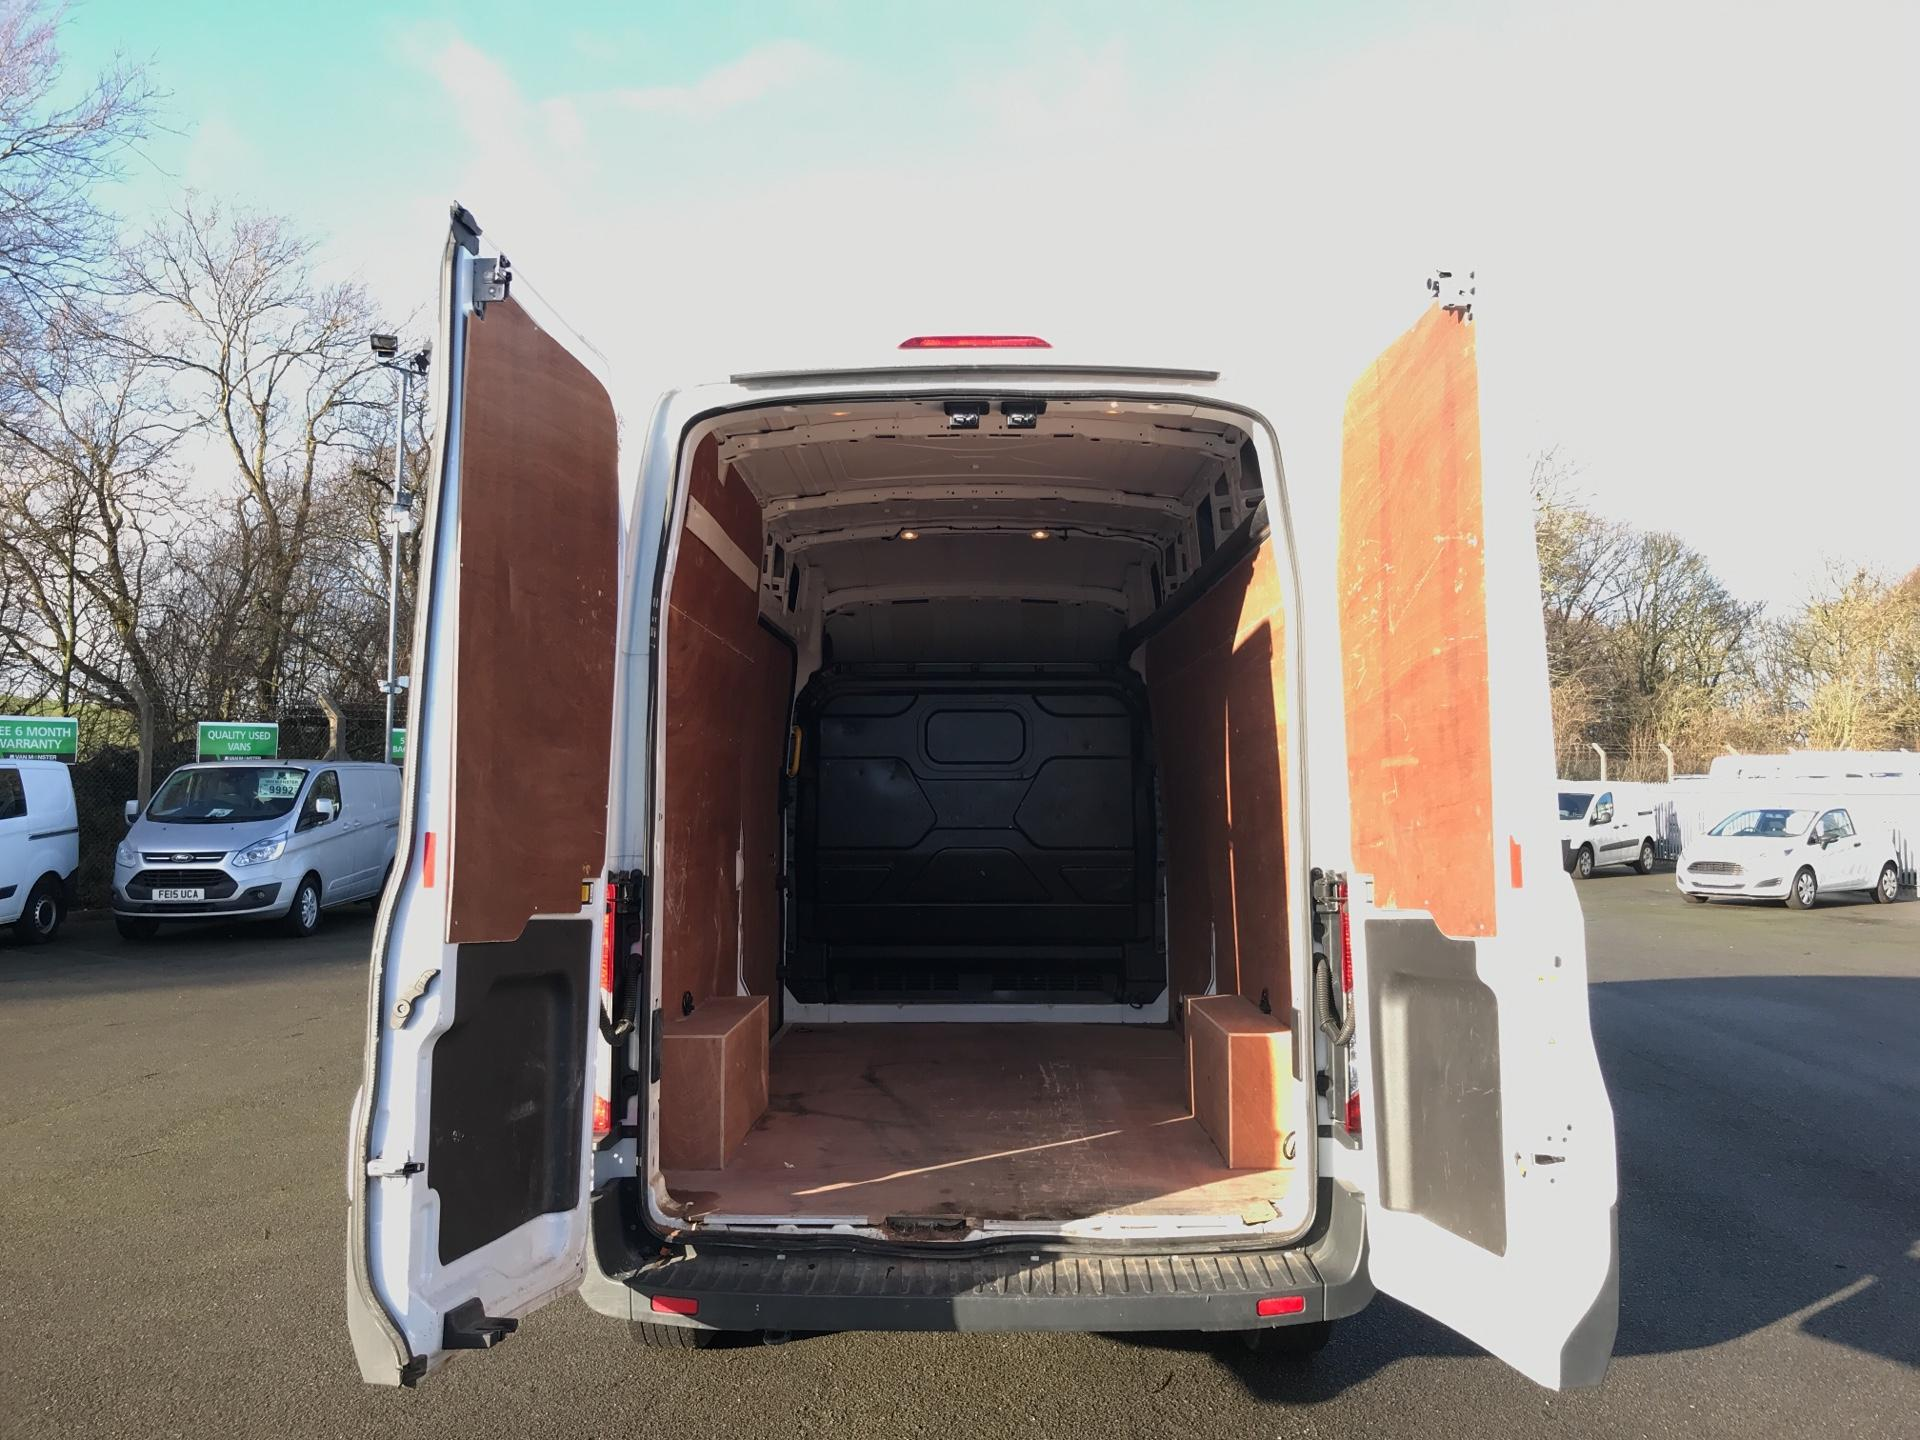 2018 Ford Transit L3 H3 VAN 130PS EURO 6  *VALUE RANGE VEHICLE - CONDITION REFLECTED IN PRICE*  (SM67MZE) Image 17